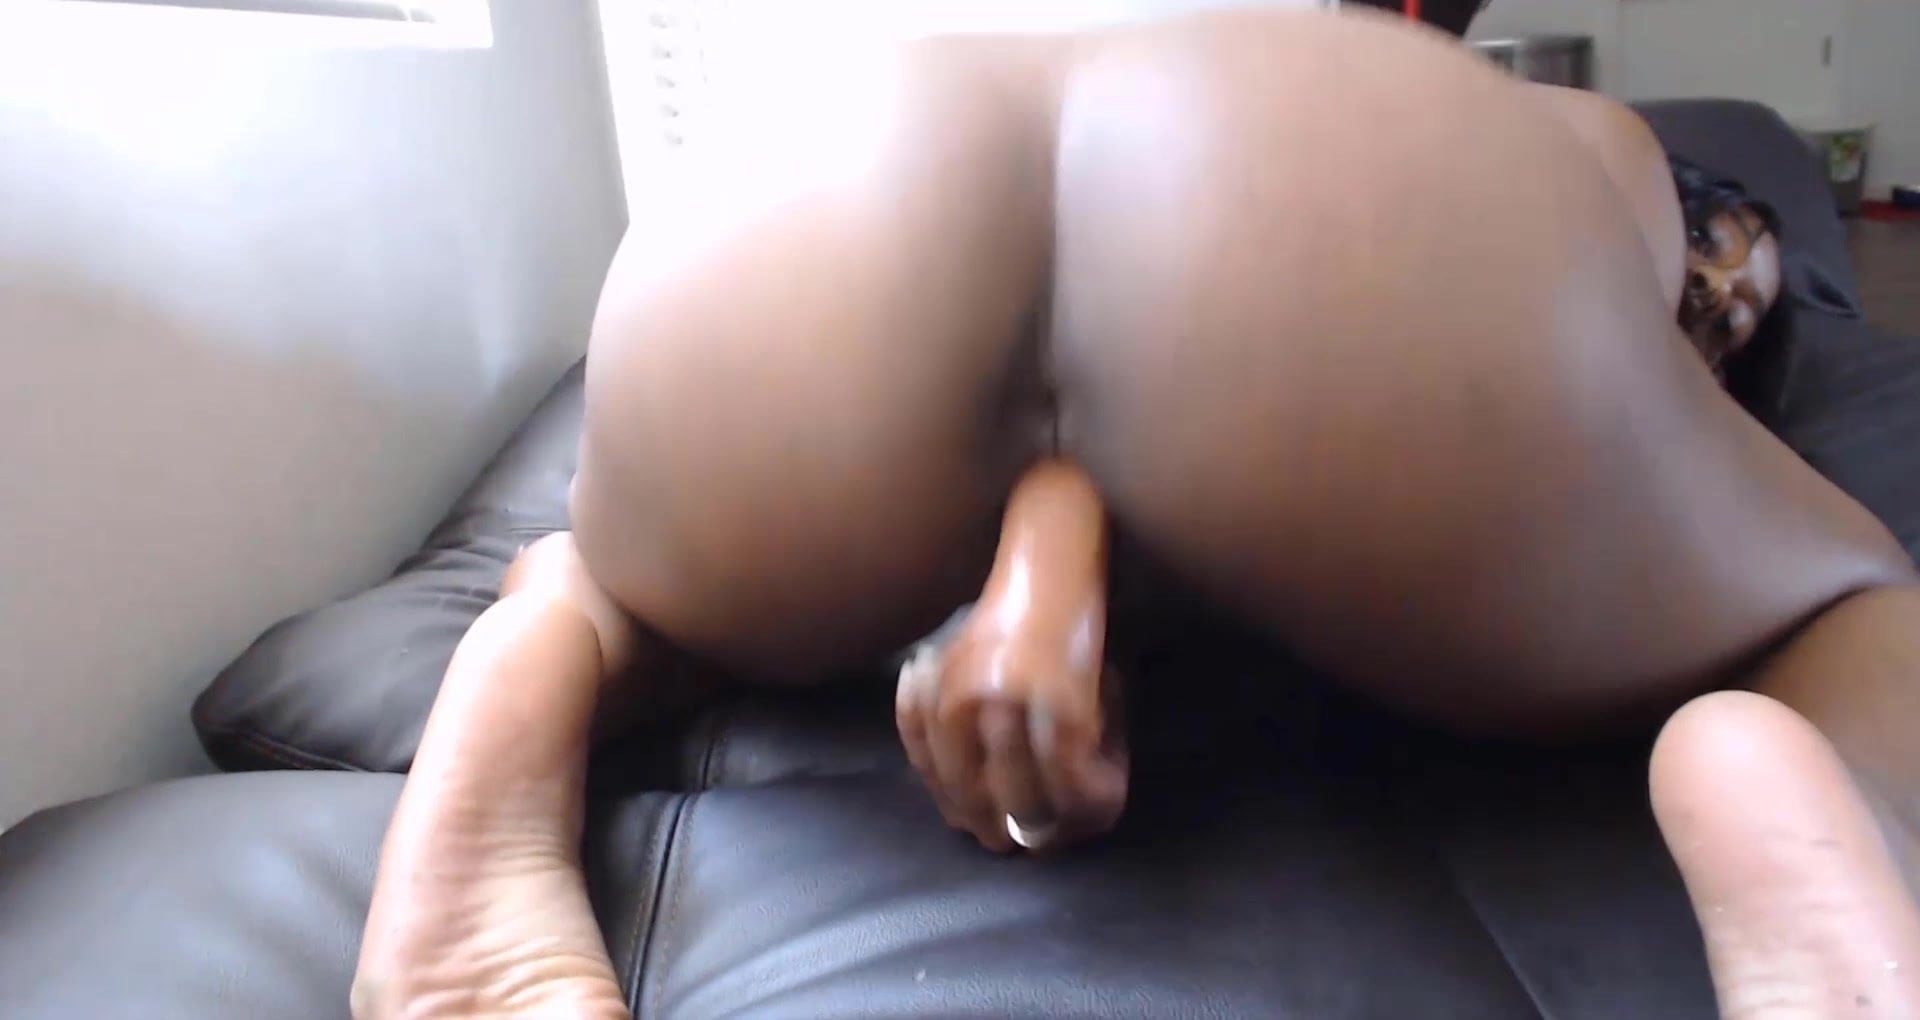 Younger  black slut with twerking booty and attractive smile